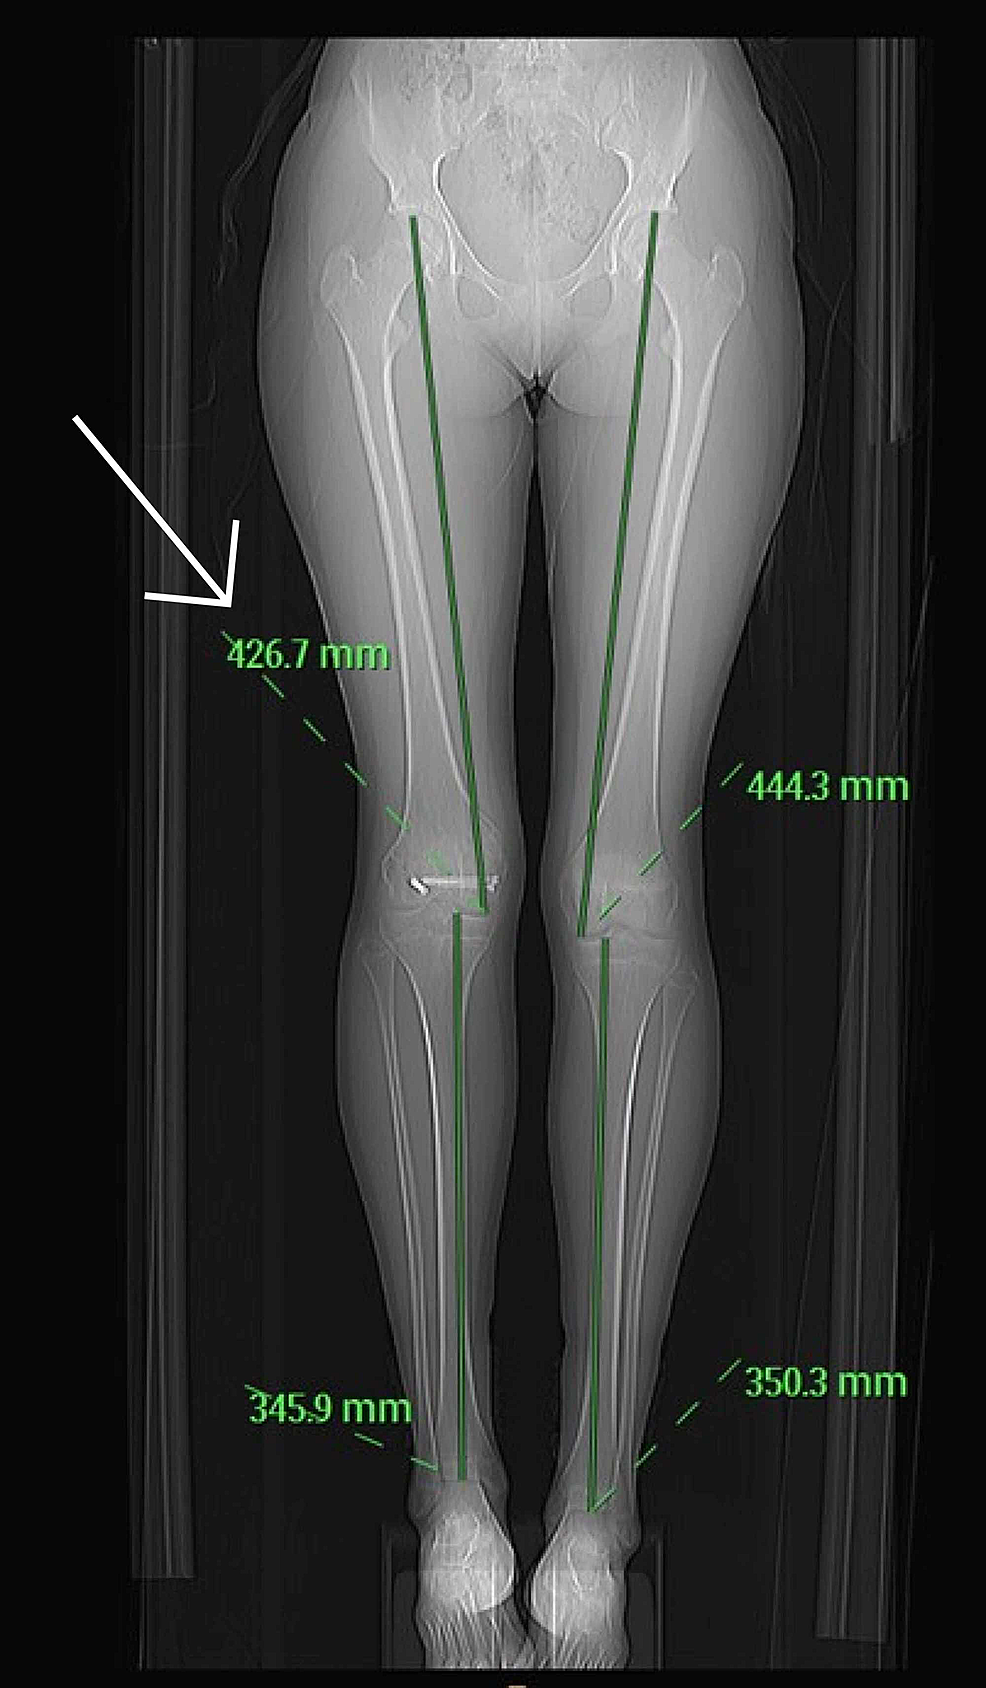 Computed-tomography-scannogram-performed-which-demonstrated-a-limb-length-discrepancy